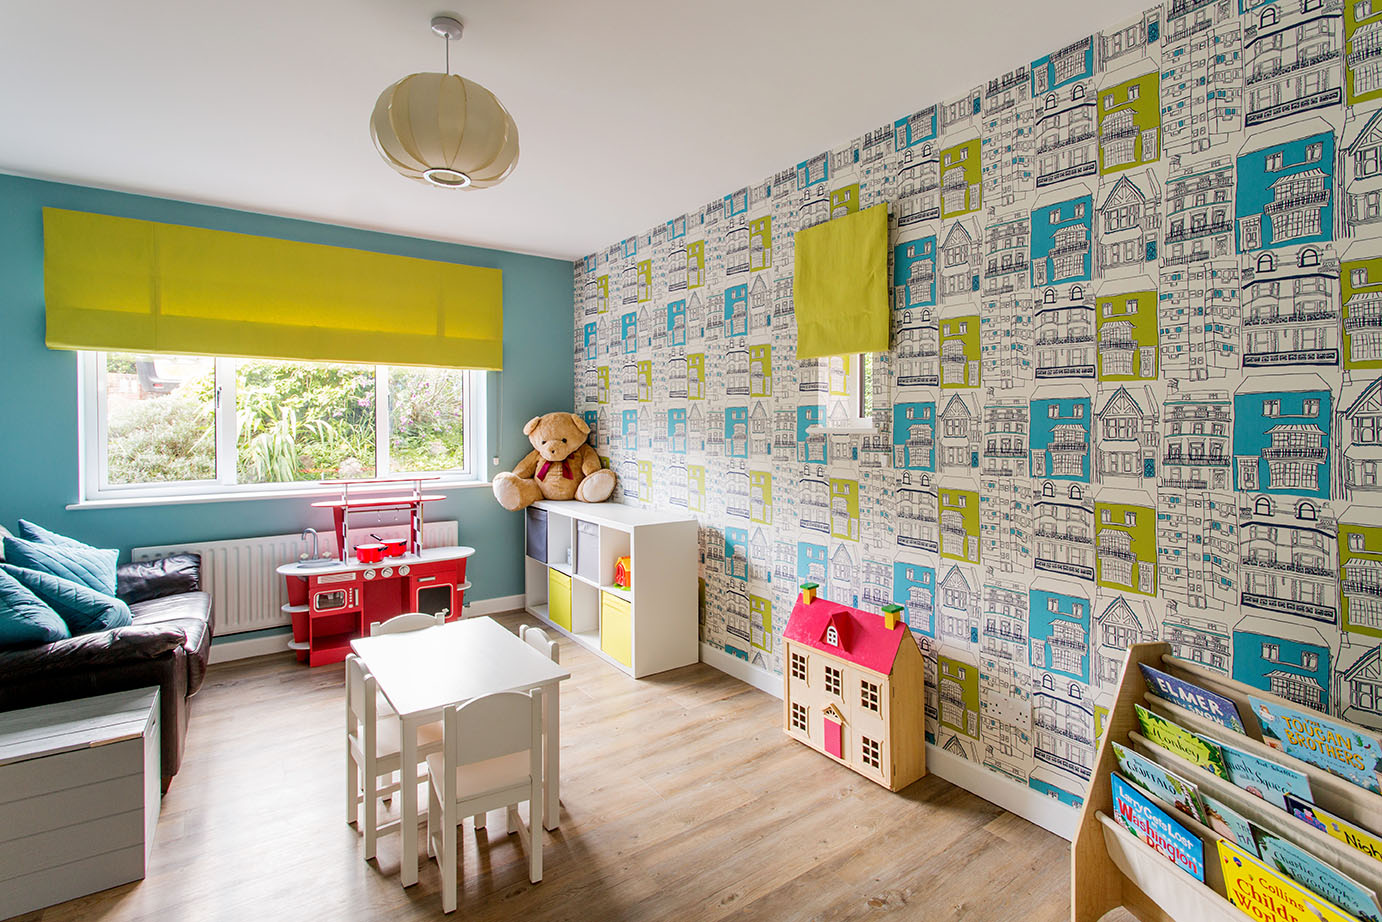 colourful children's room, playroom with wallpaper, Interior designer Oxfordshire, home decor, interior stylist, interior designer buckingham, interior designer berkshire, interior designer London, playroom interior design Henley, niki Schafer interior designer Oxfordshire